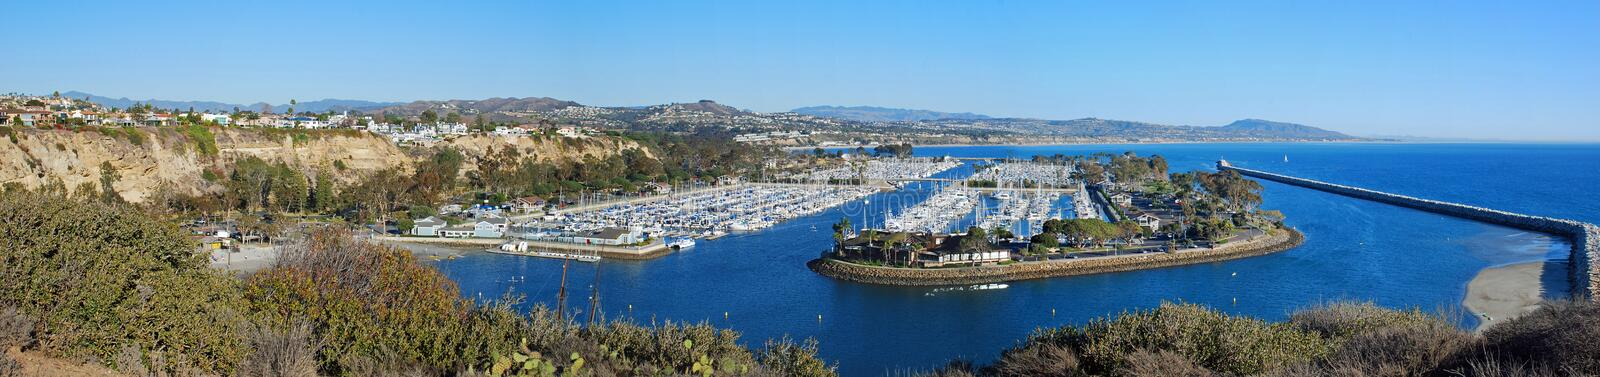 Panoramic view of Dana Point Harbor, Southern California stock image